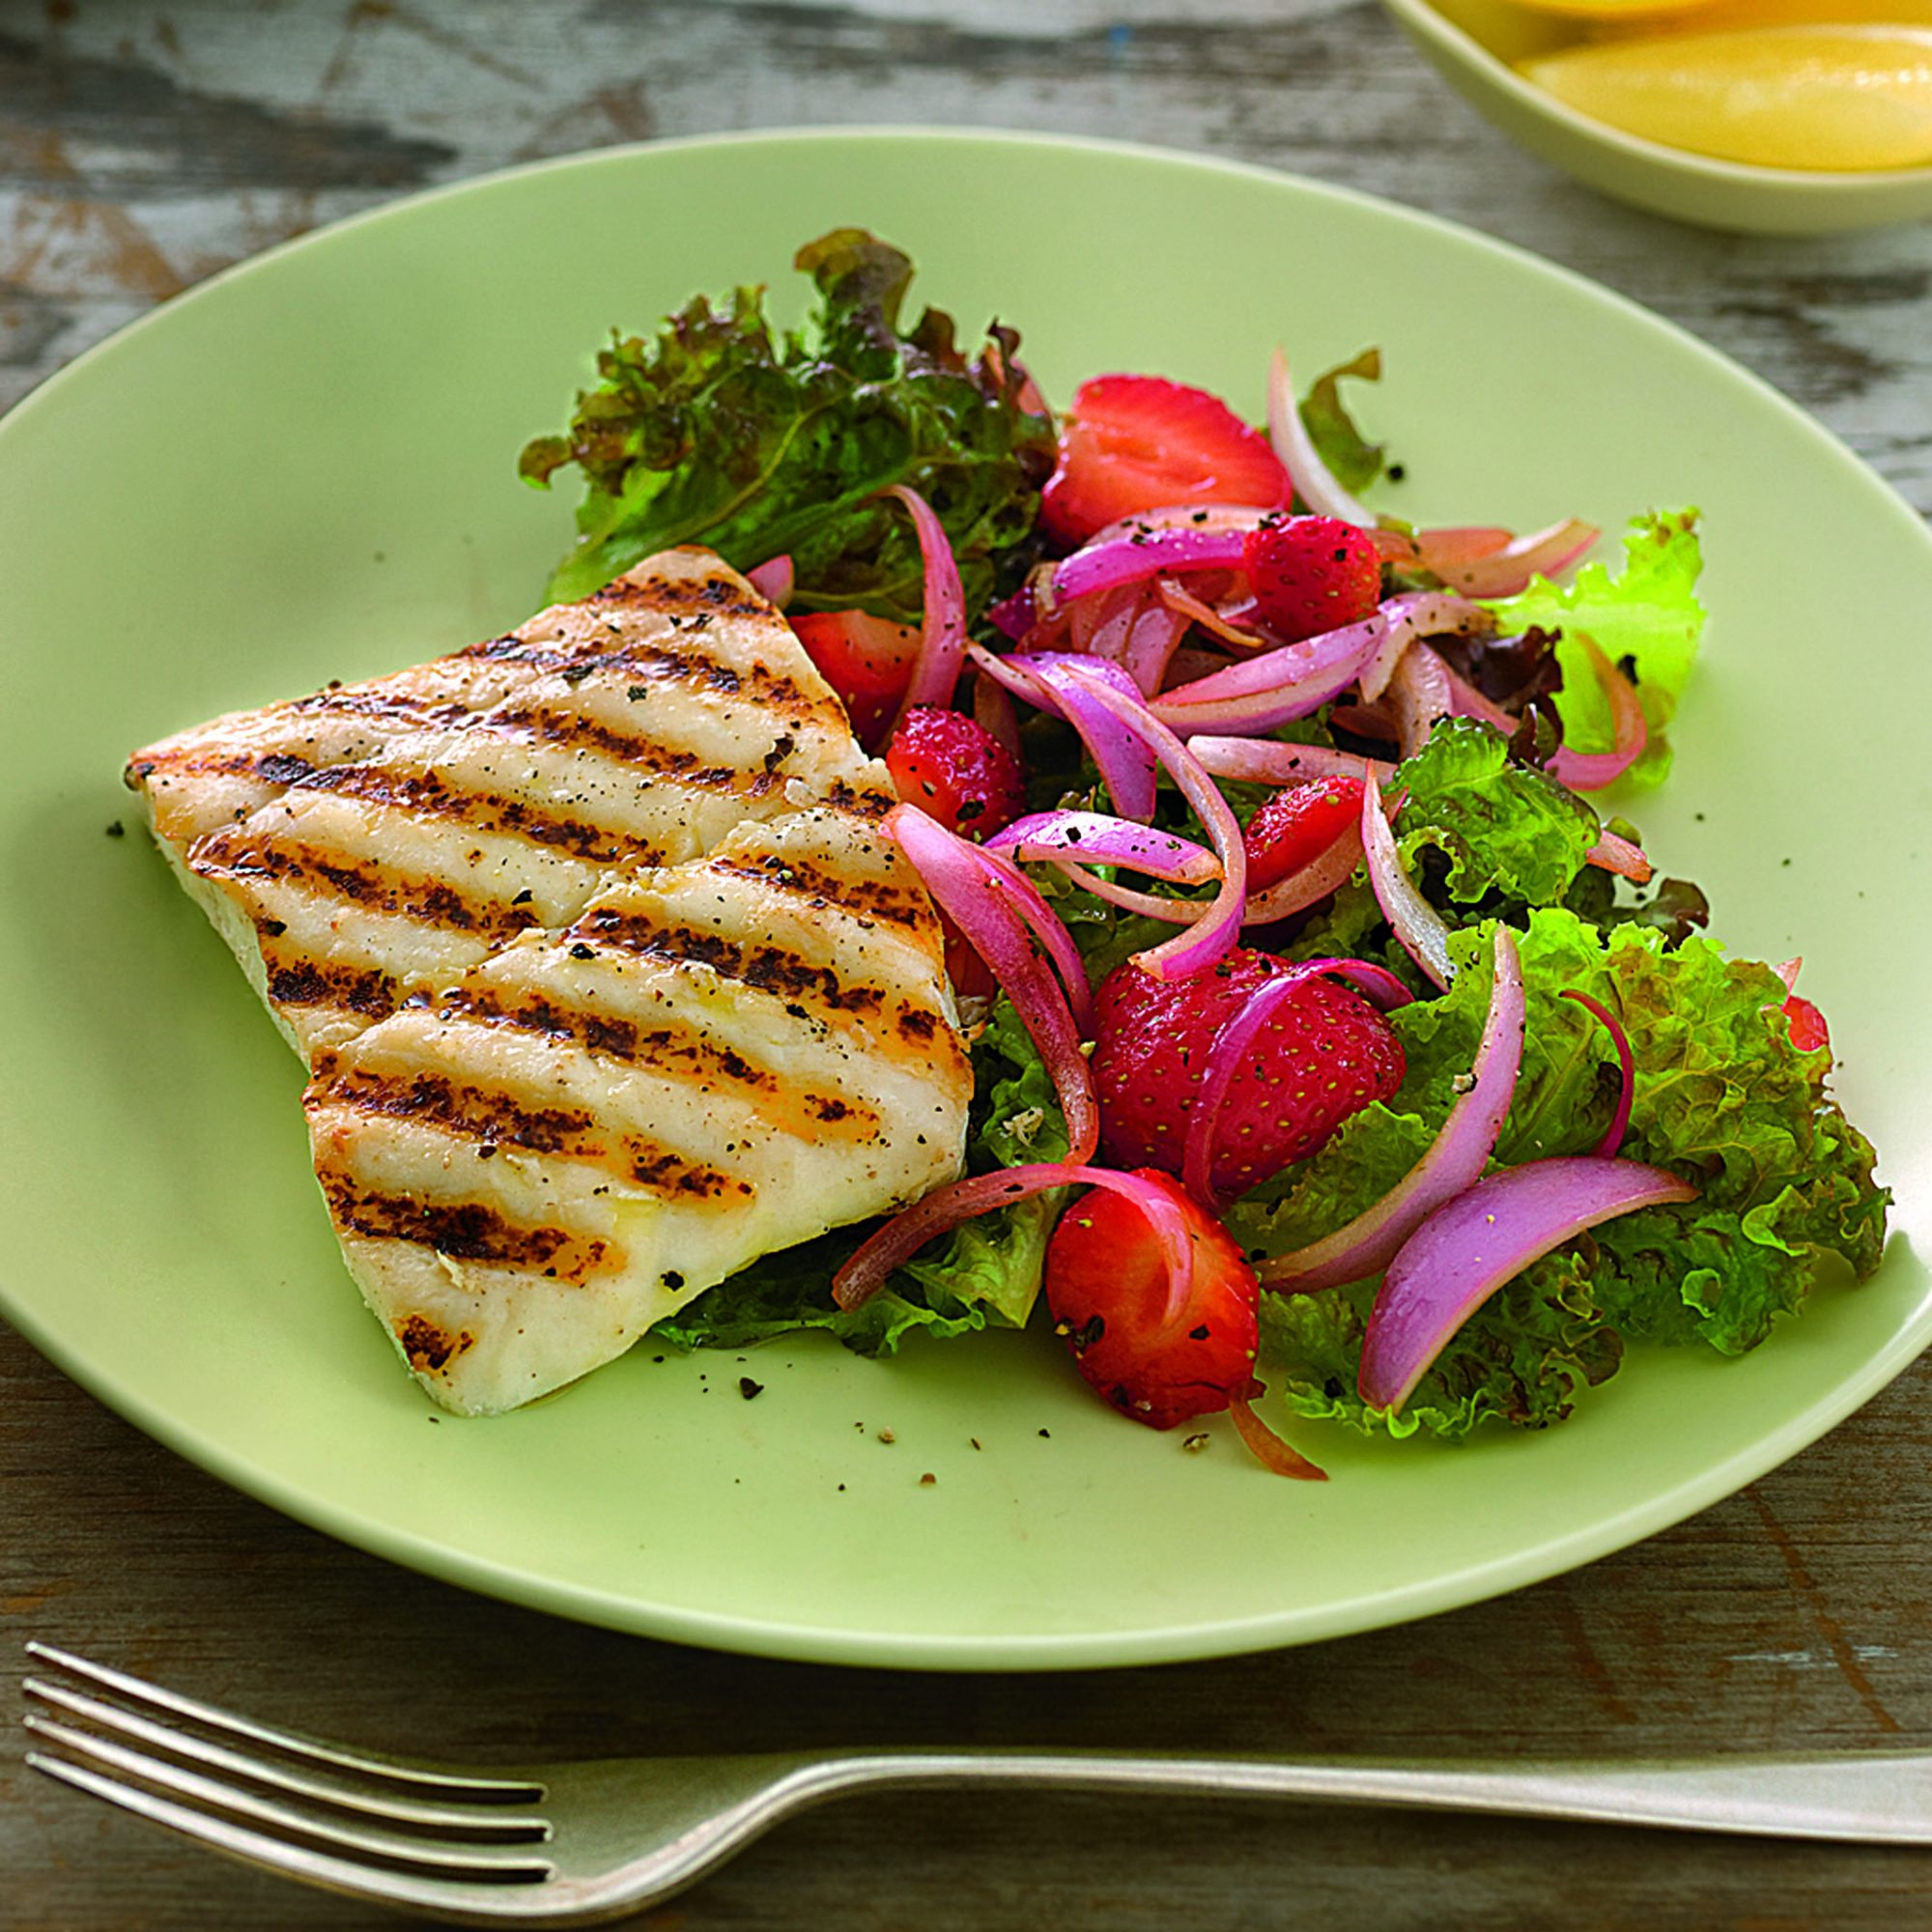 Grilled Halibut with Strawberry Salad